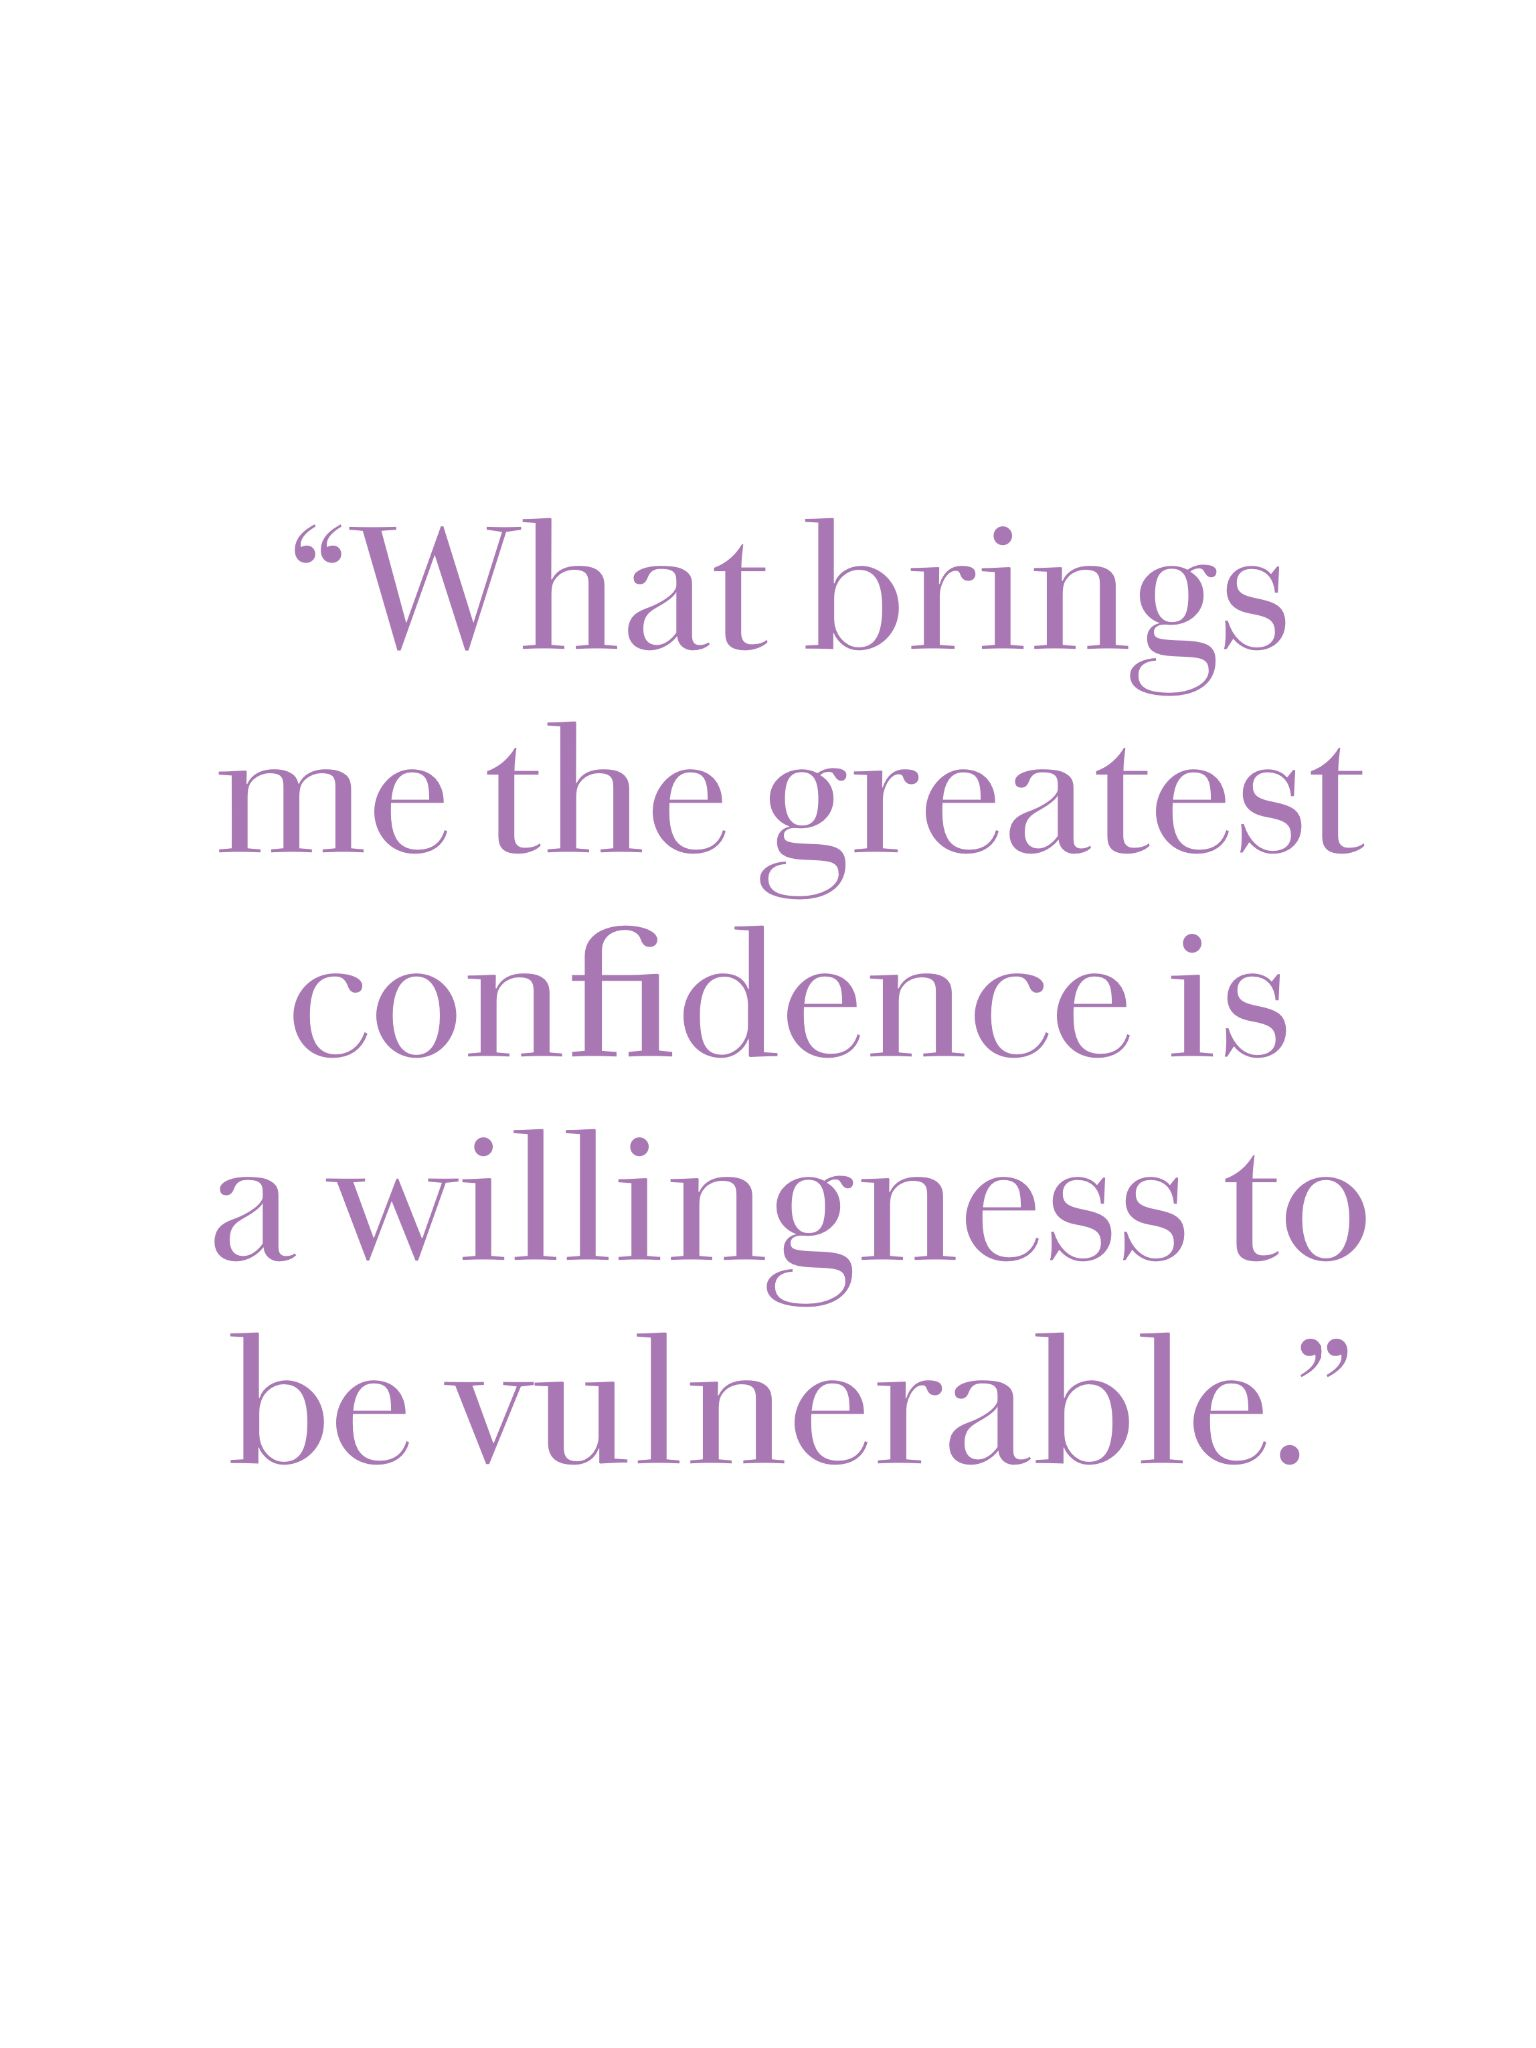 But Being Vulnerable Is Scary Inspirational Words Spiritual Quotes Words Matter